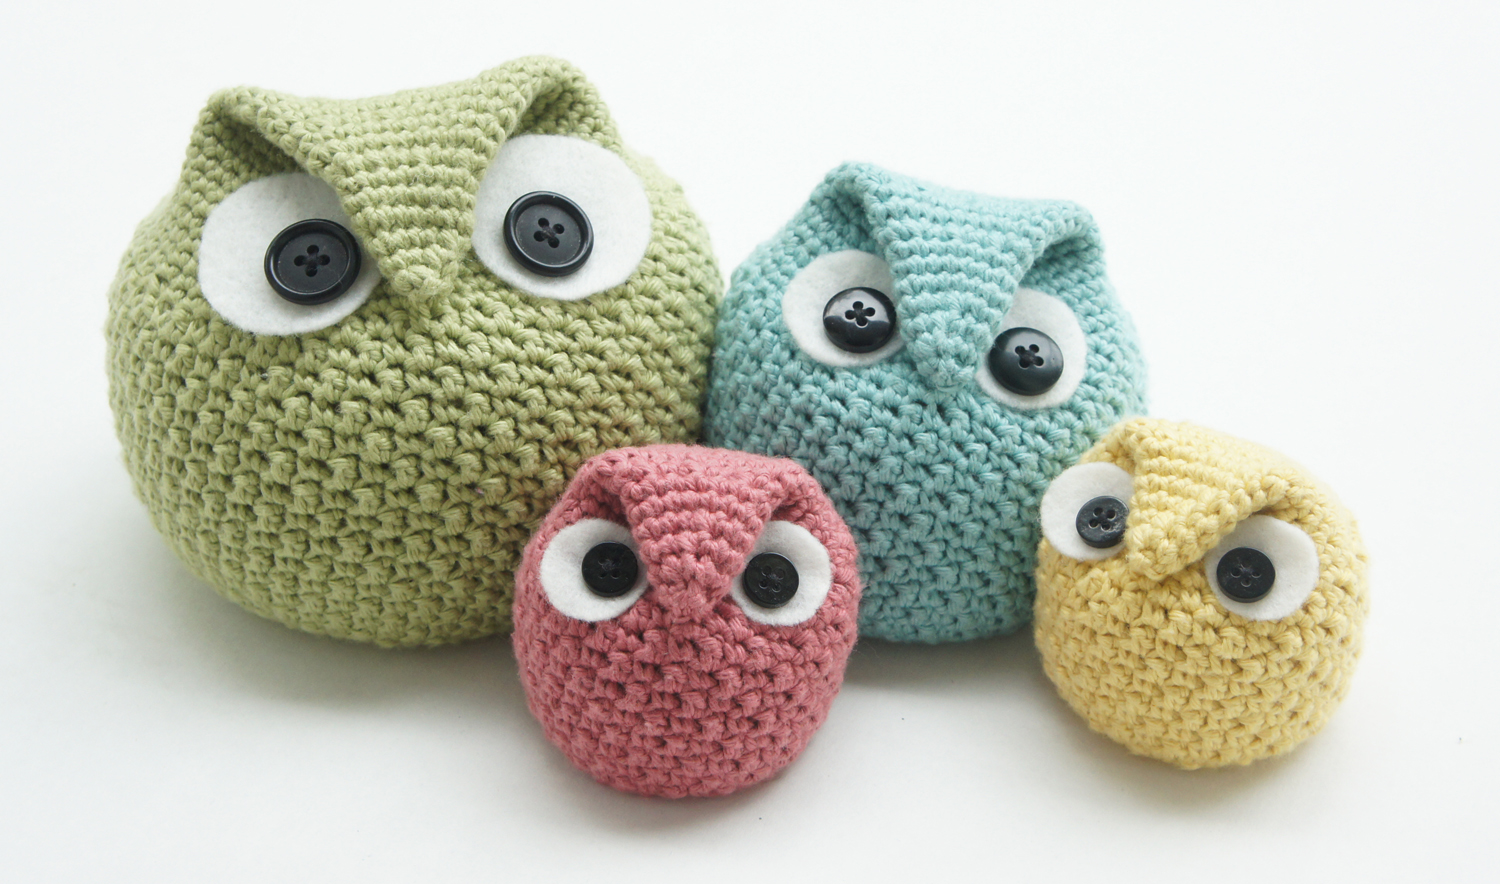 ... design shop: new crochet pattern - chubby owl family by tara schreyer